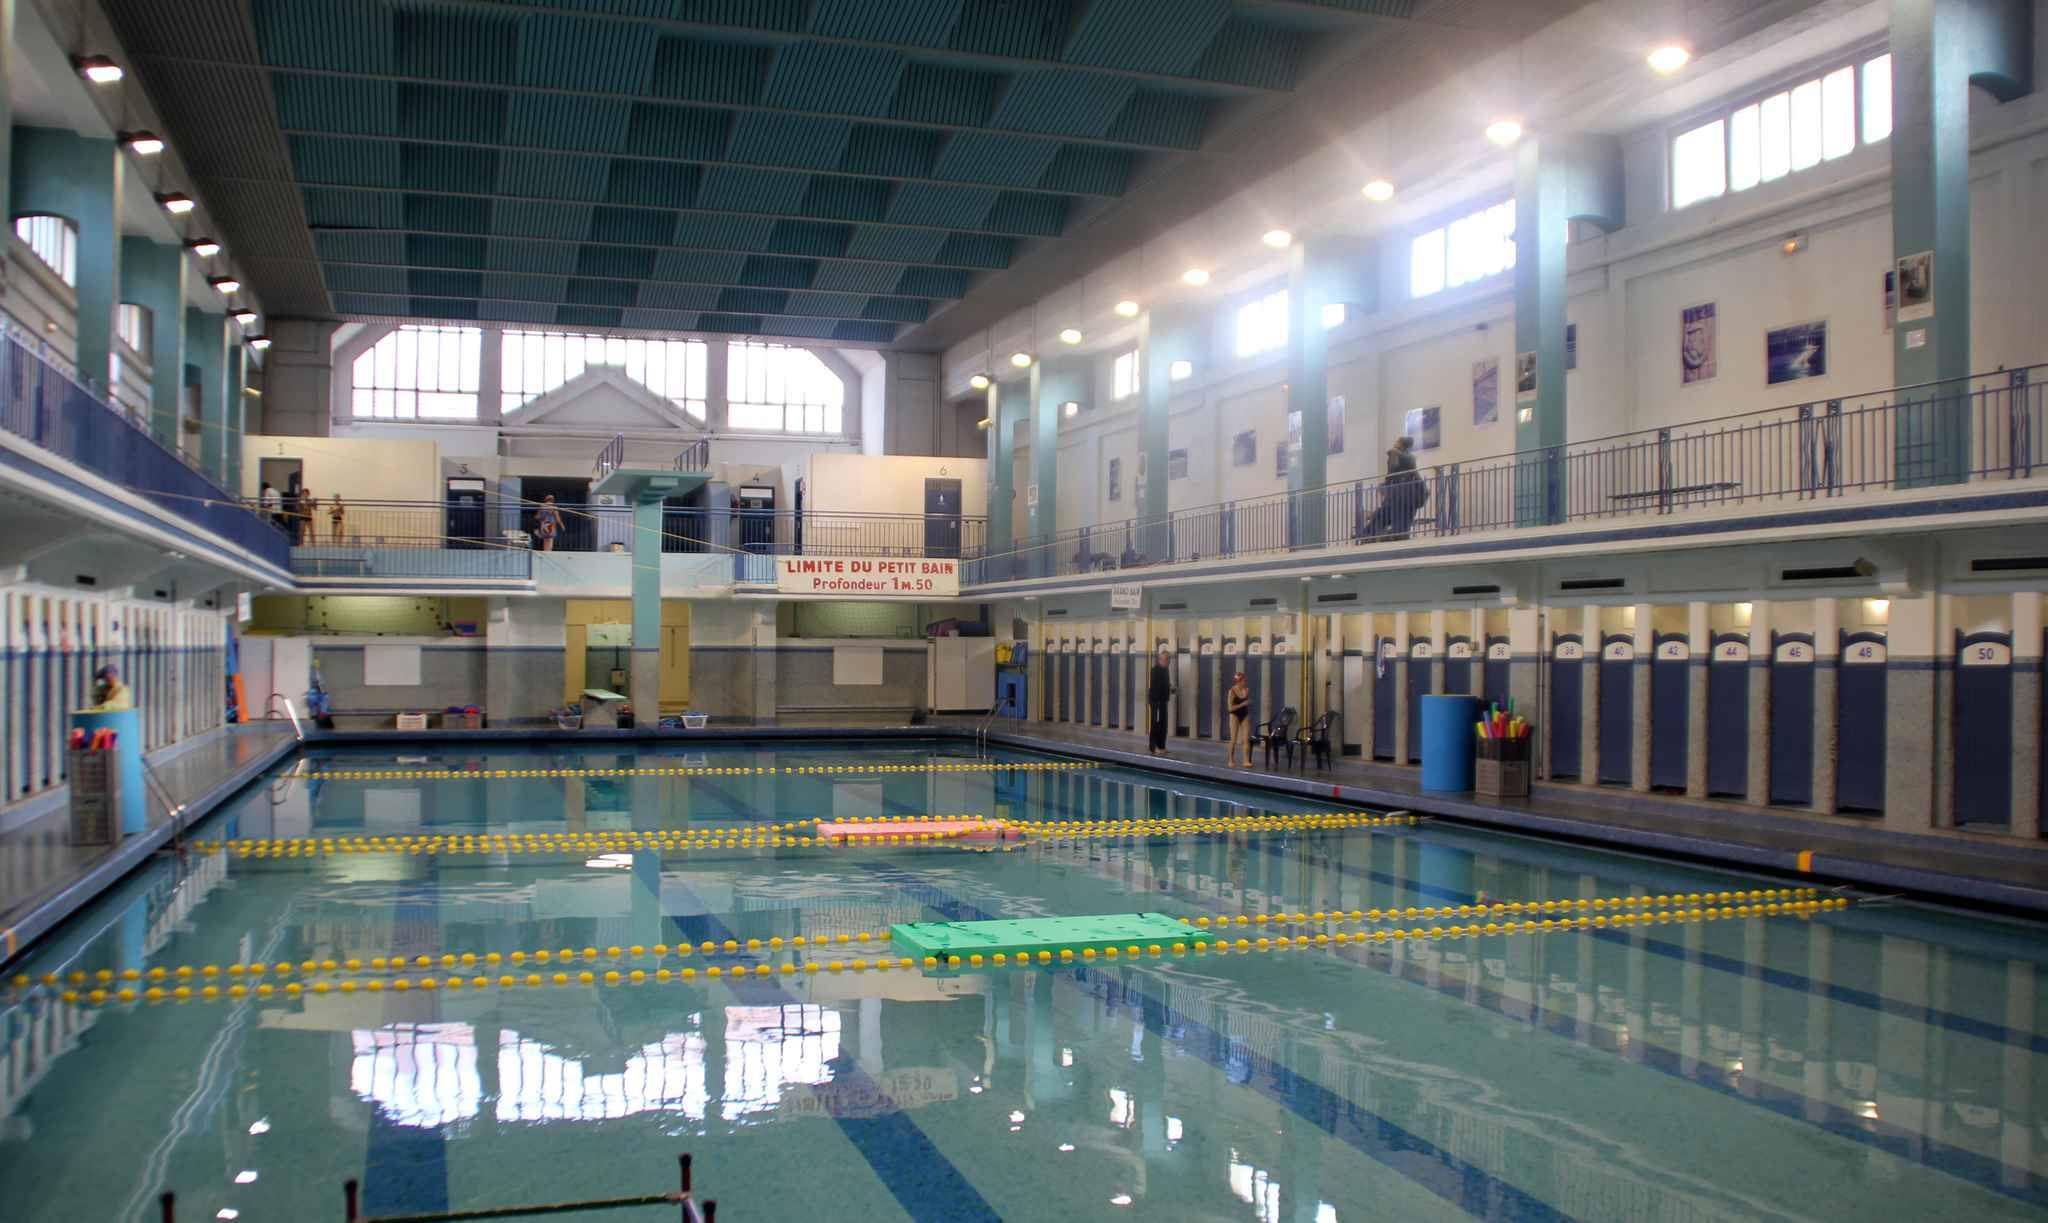 Rennes la piscine saint georges bient t class e aux for Piscine saint georges